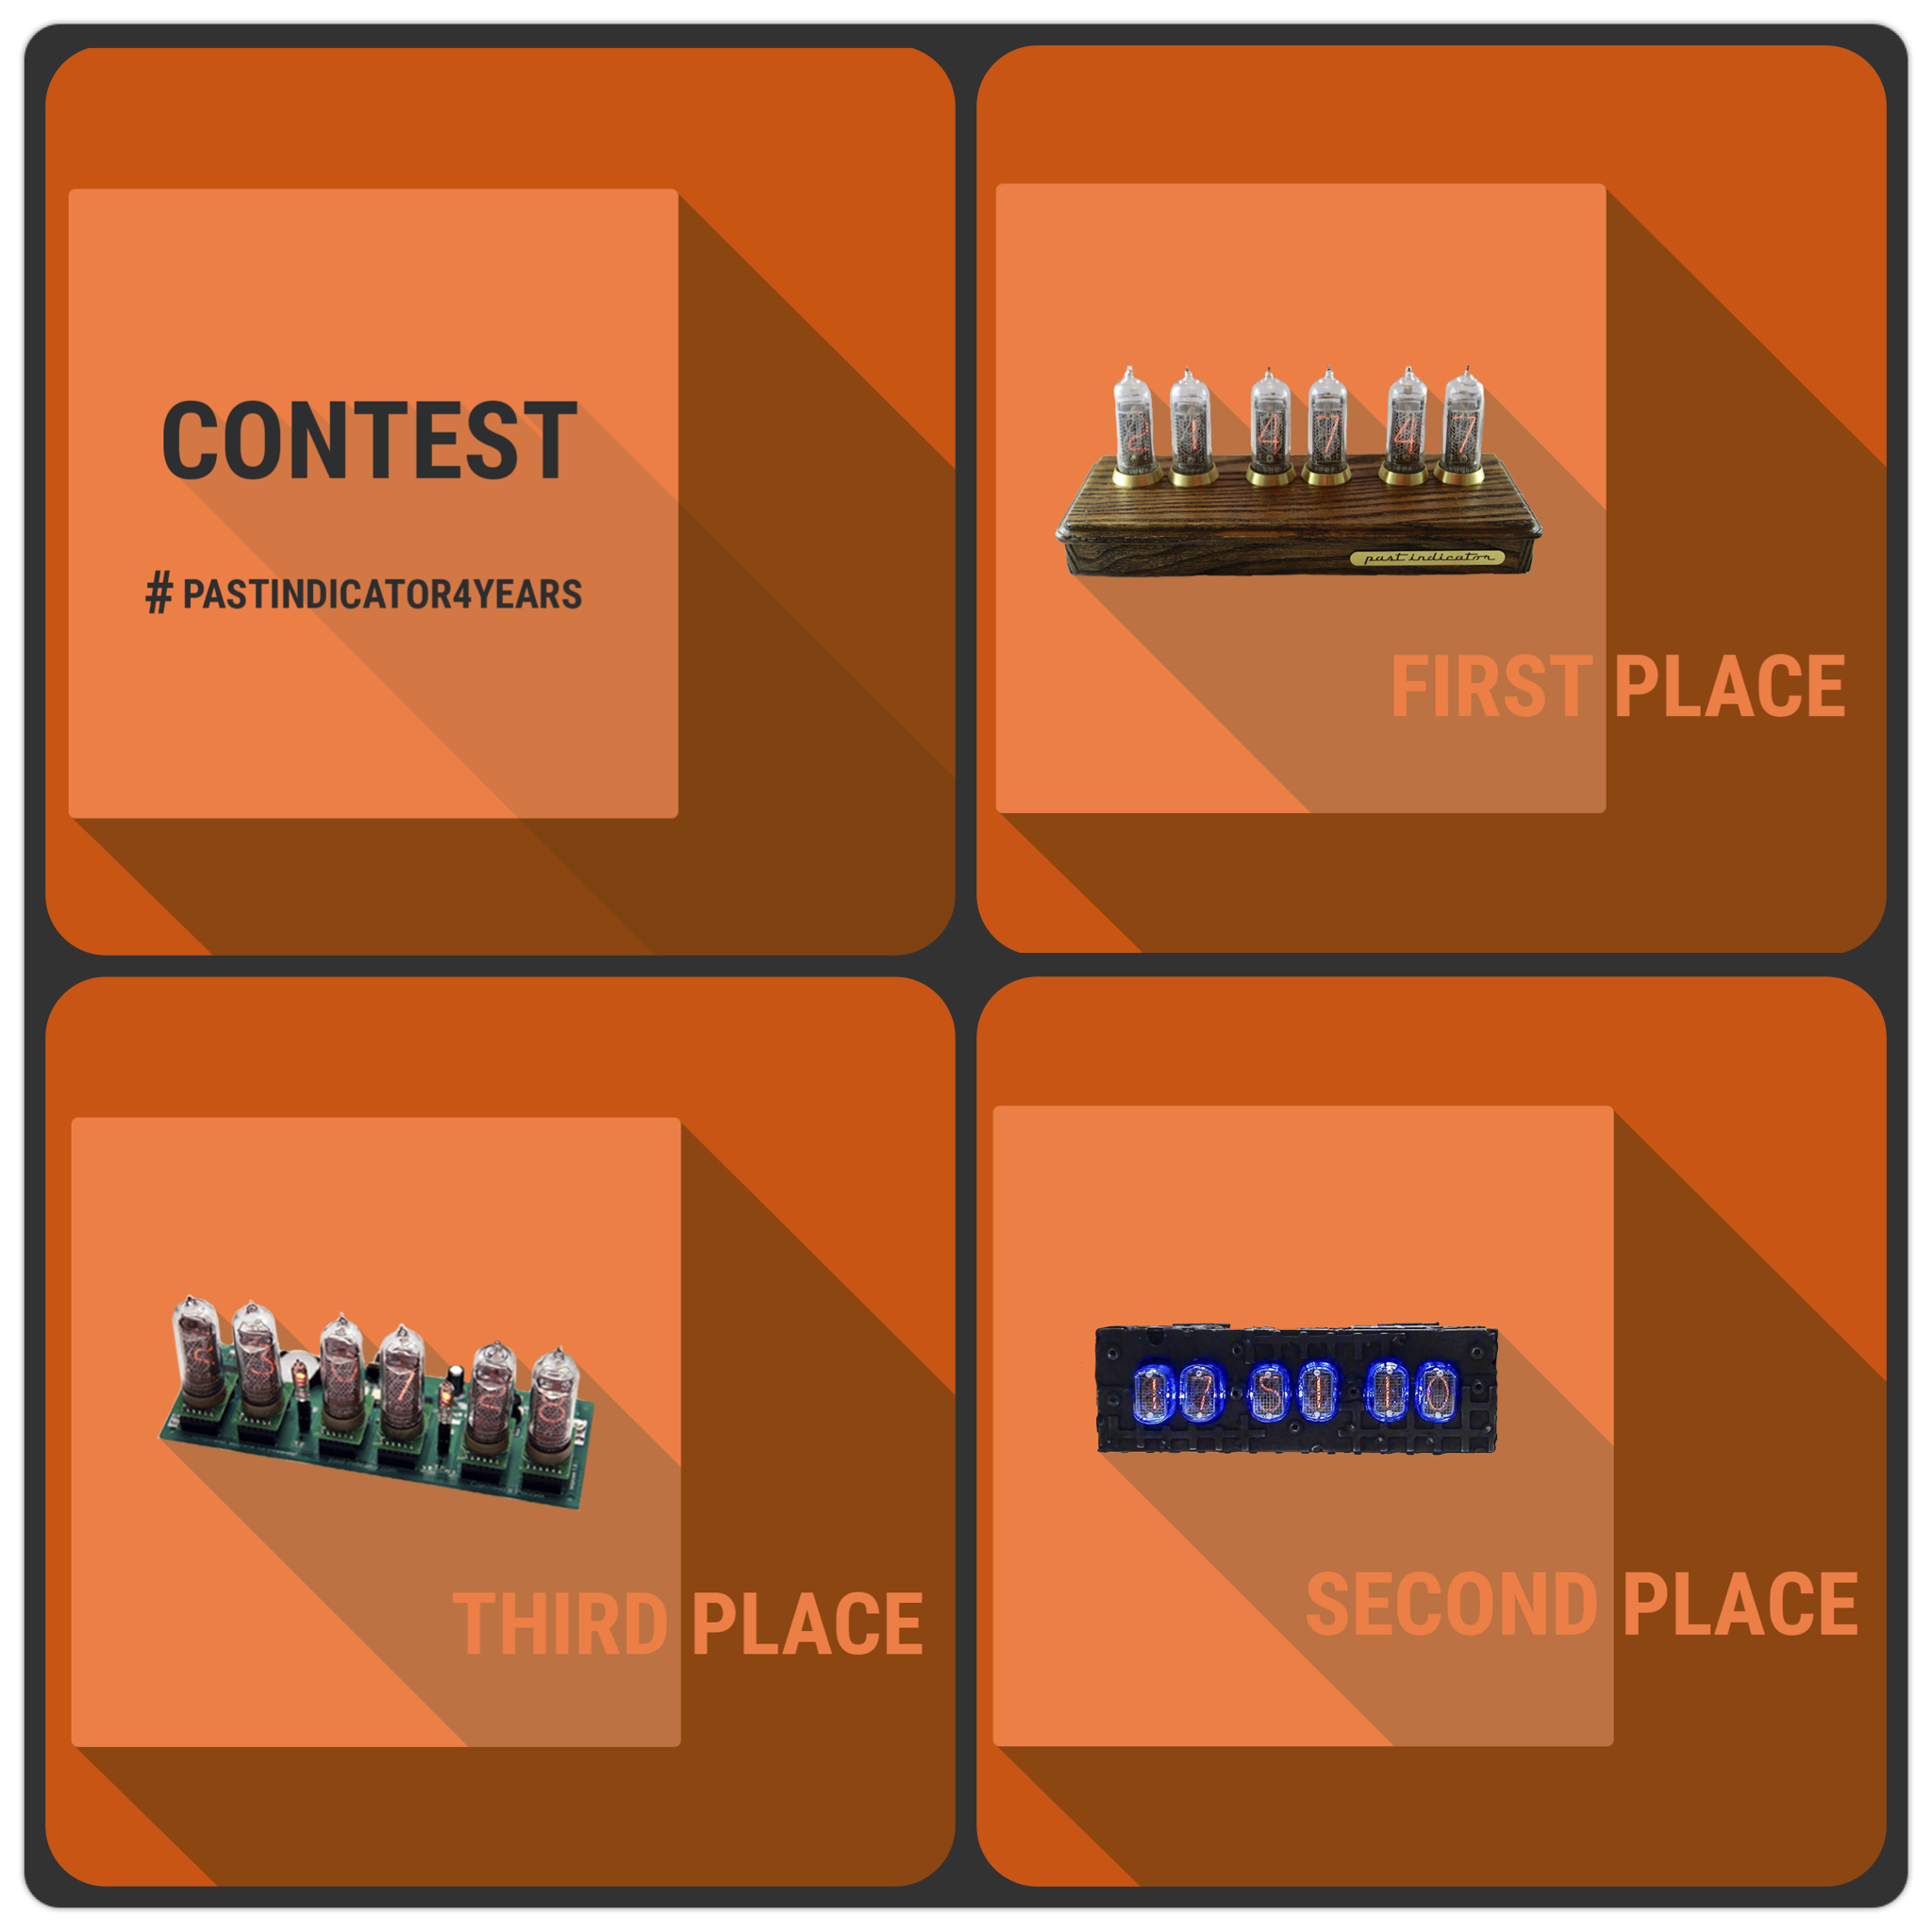 This day has come! We giveaway Nixie Tube Clocks! To participate in our Photo Contest upload your photo using this entry form:  http://past-indicator.com/contest   #nixieclock